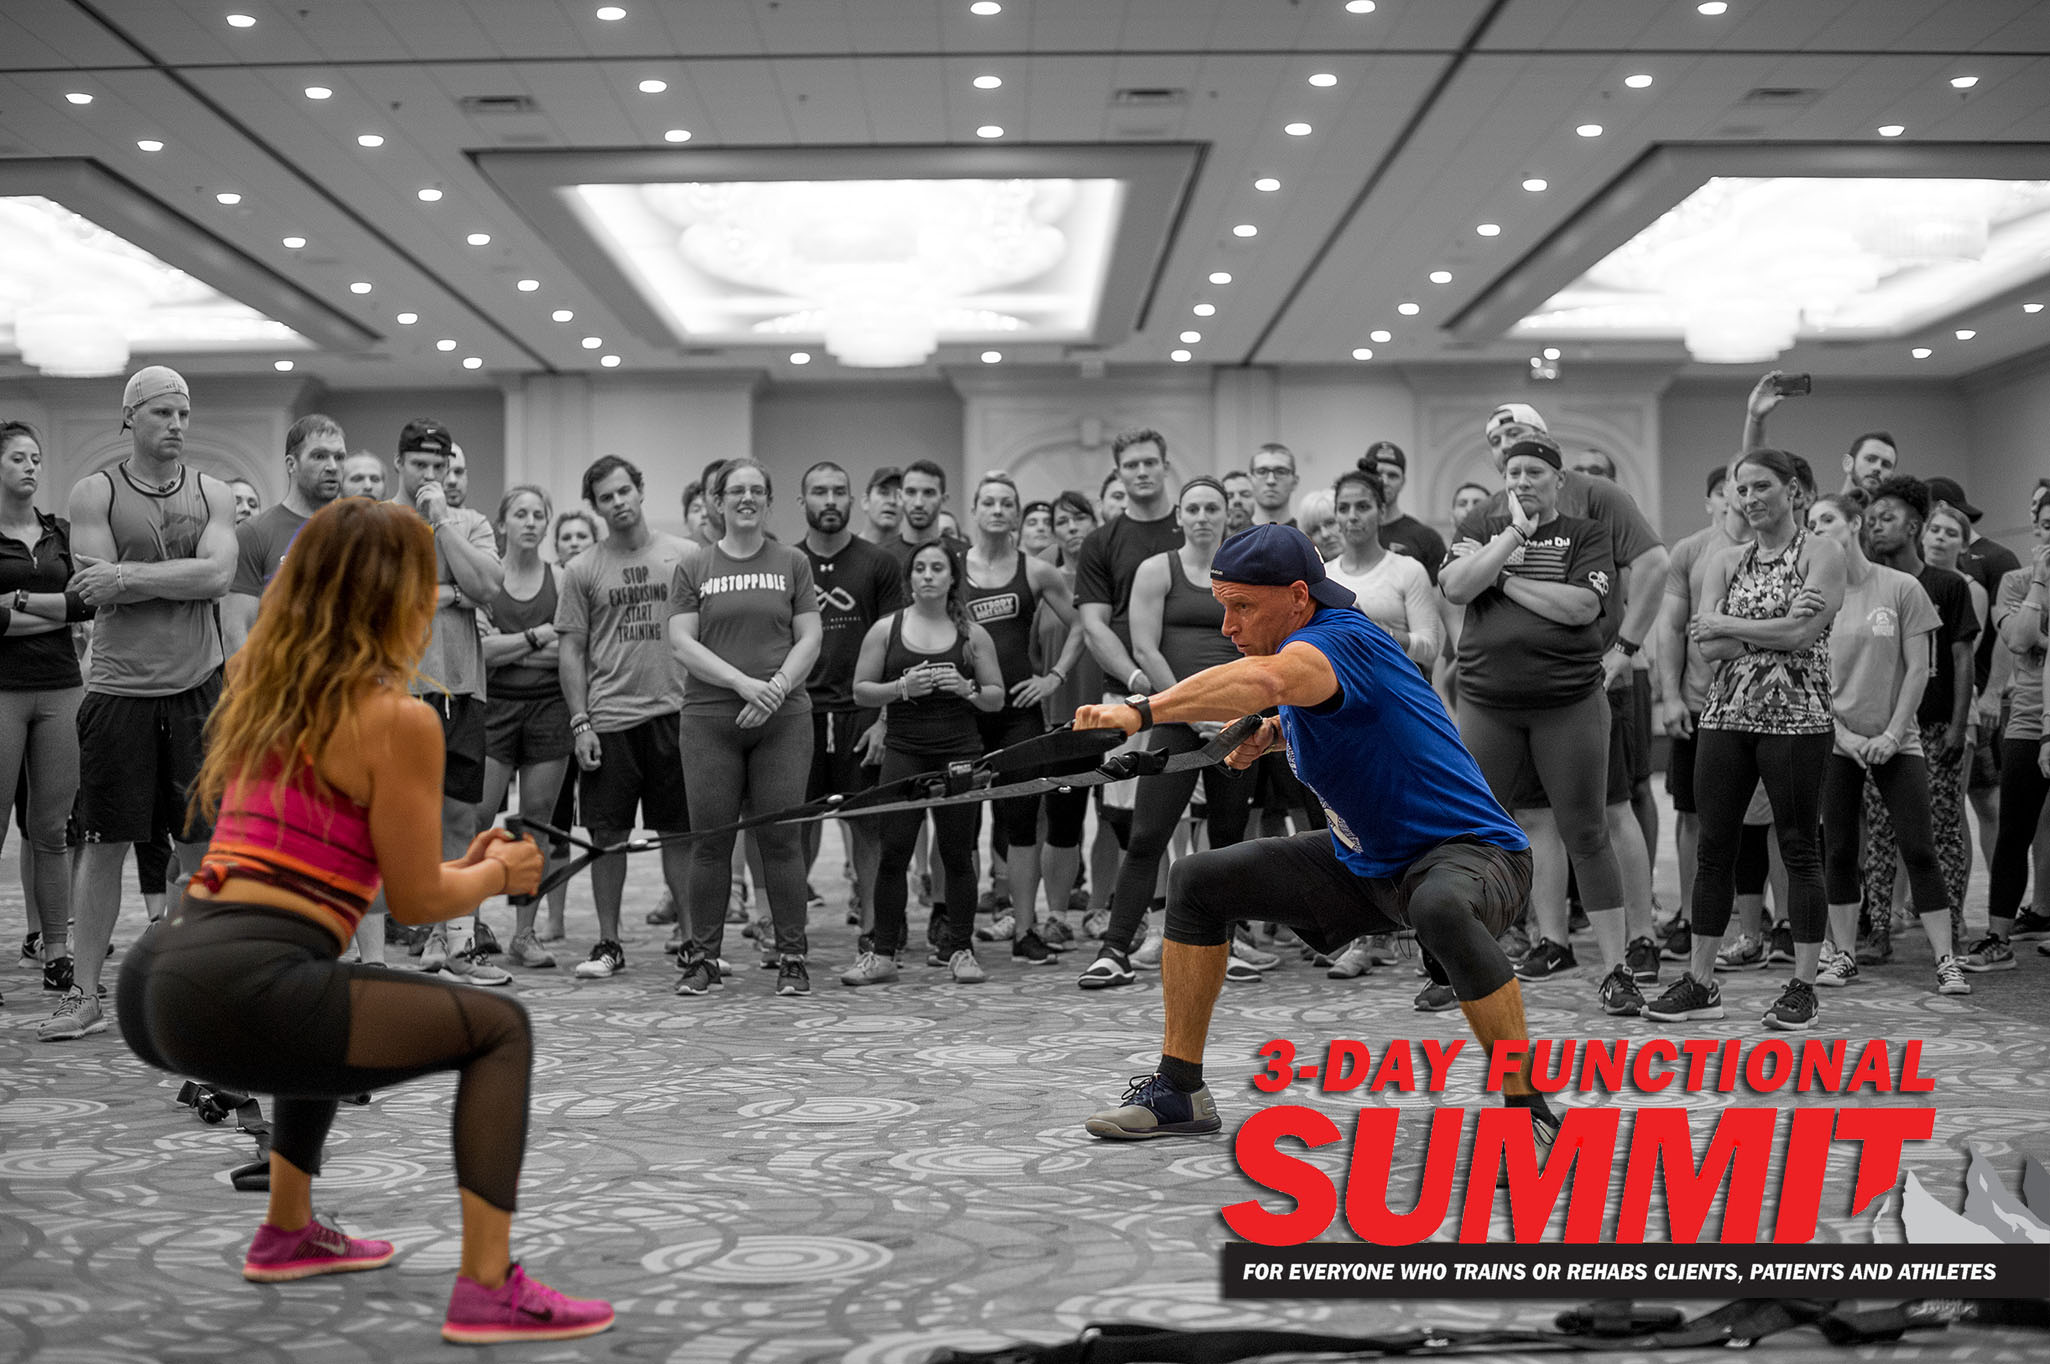 3-Day Functional Training Summits